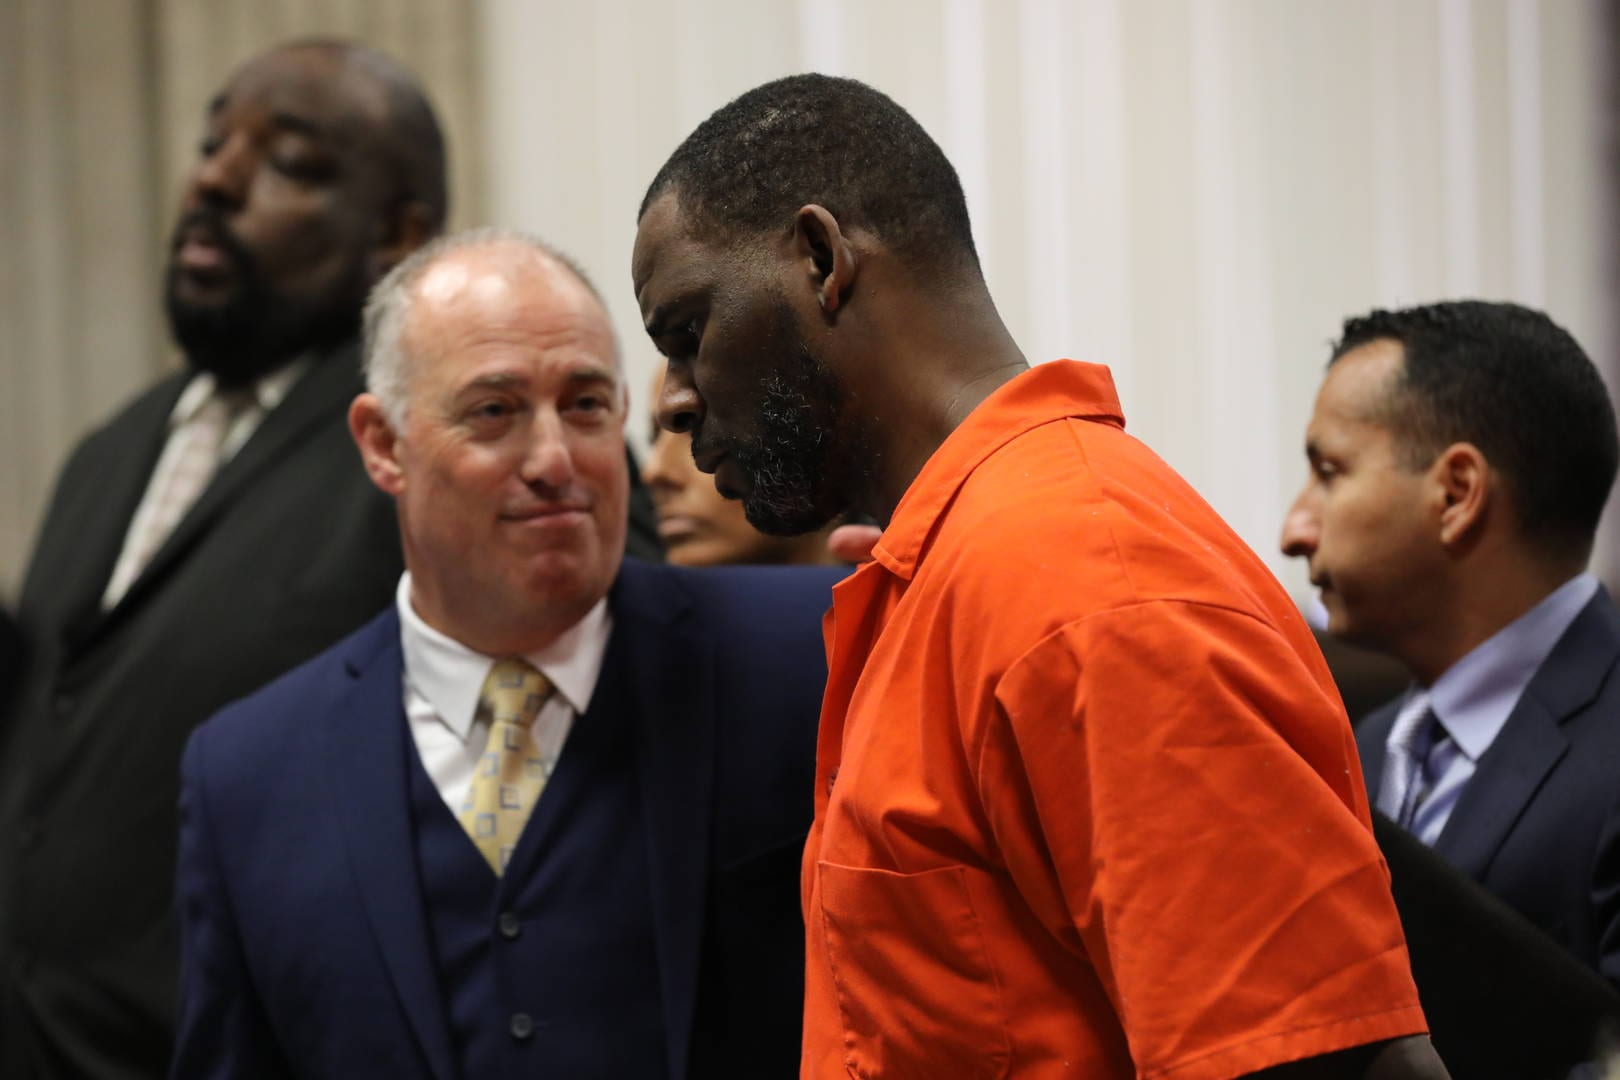 Texas Inmate Writes Handwritten Letter to Judge Warning 'Jail Staff' is Targeting R. Kelly